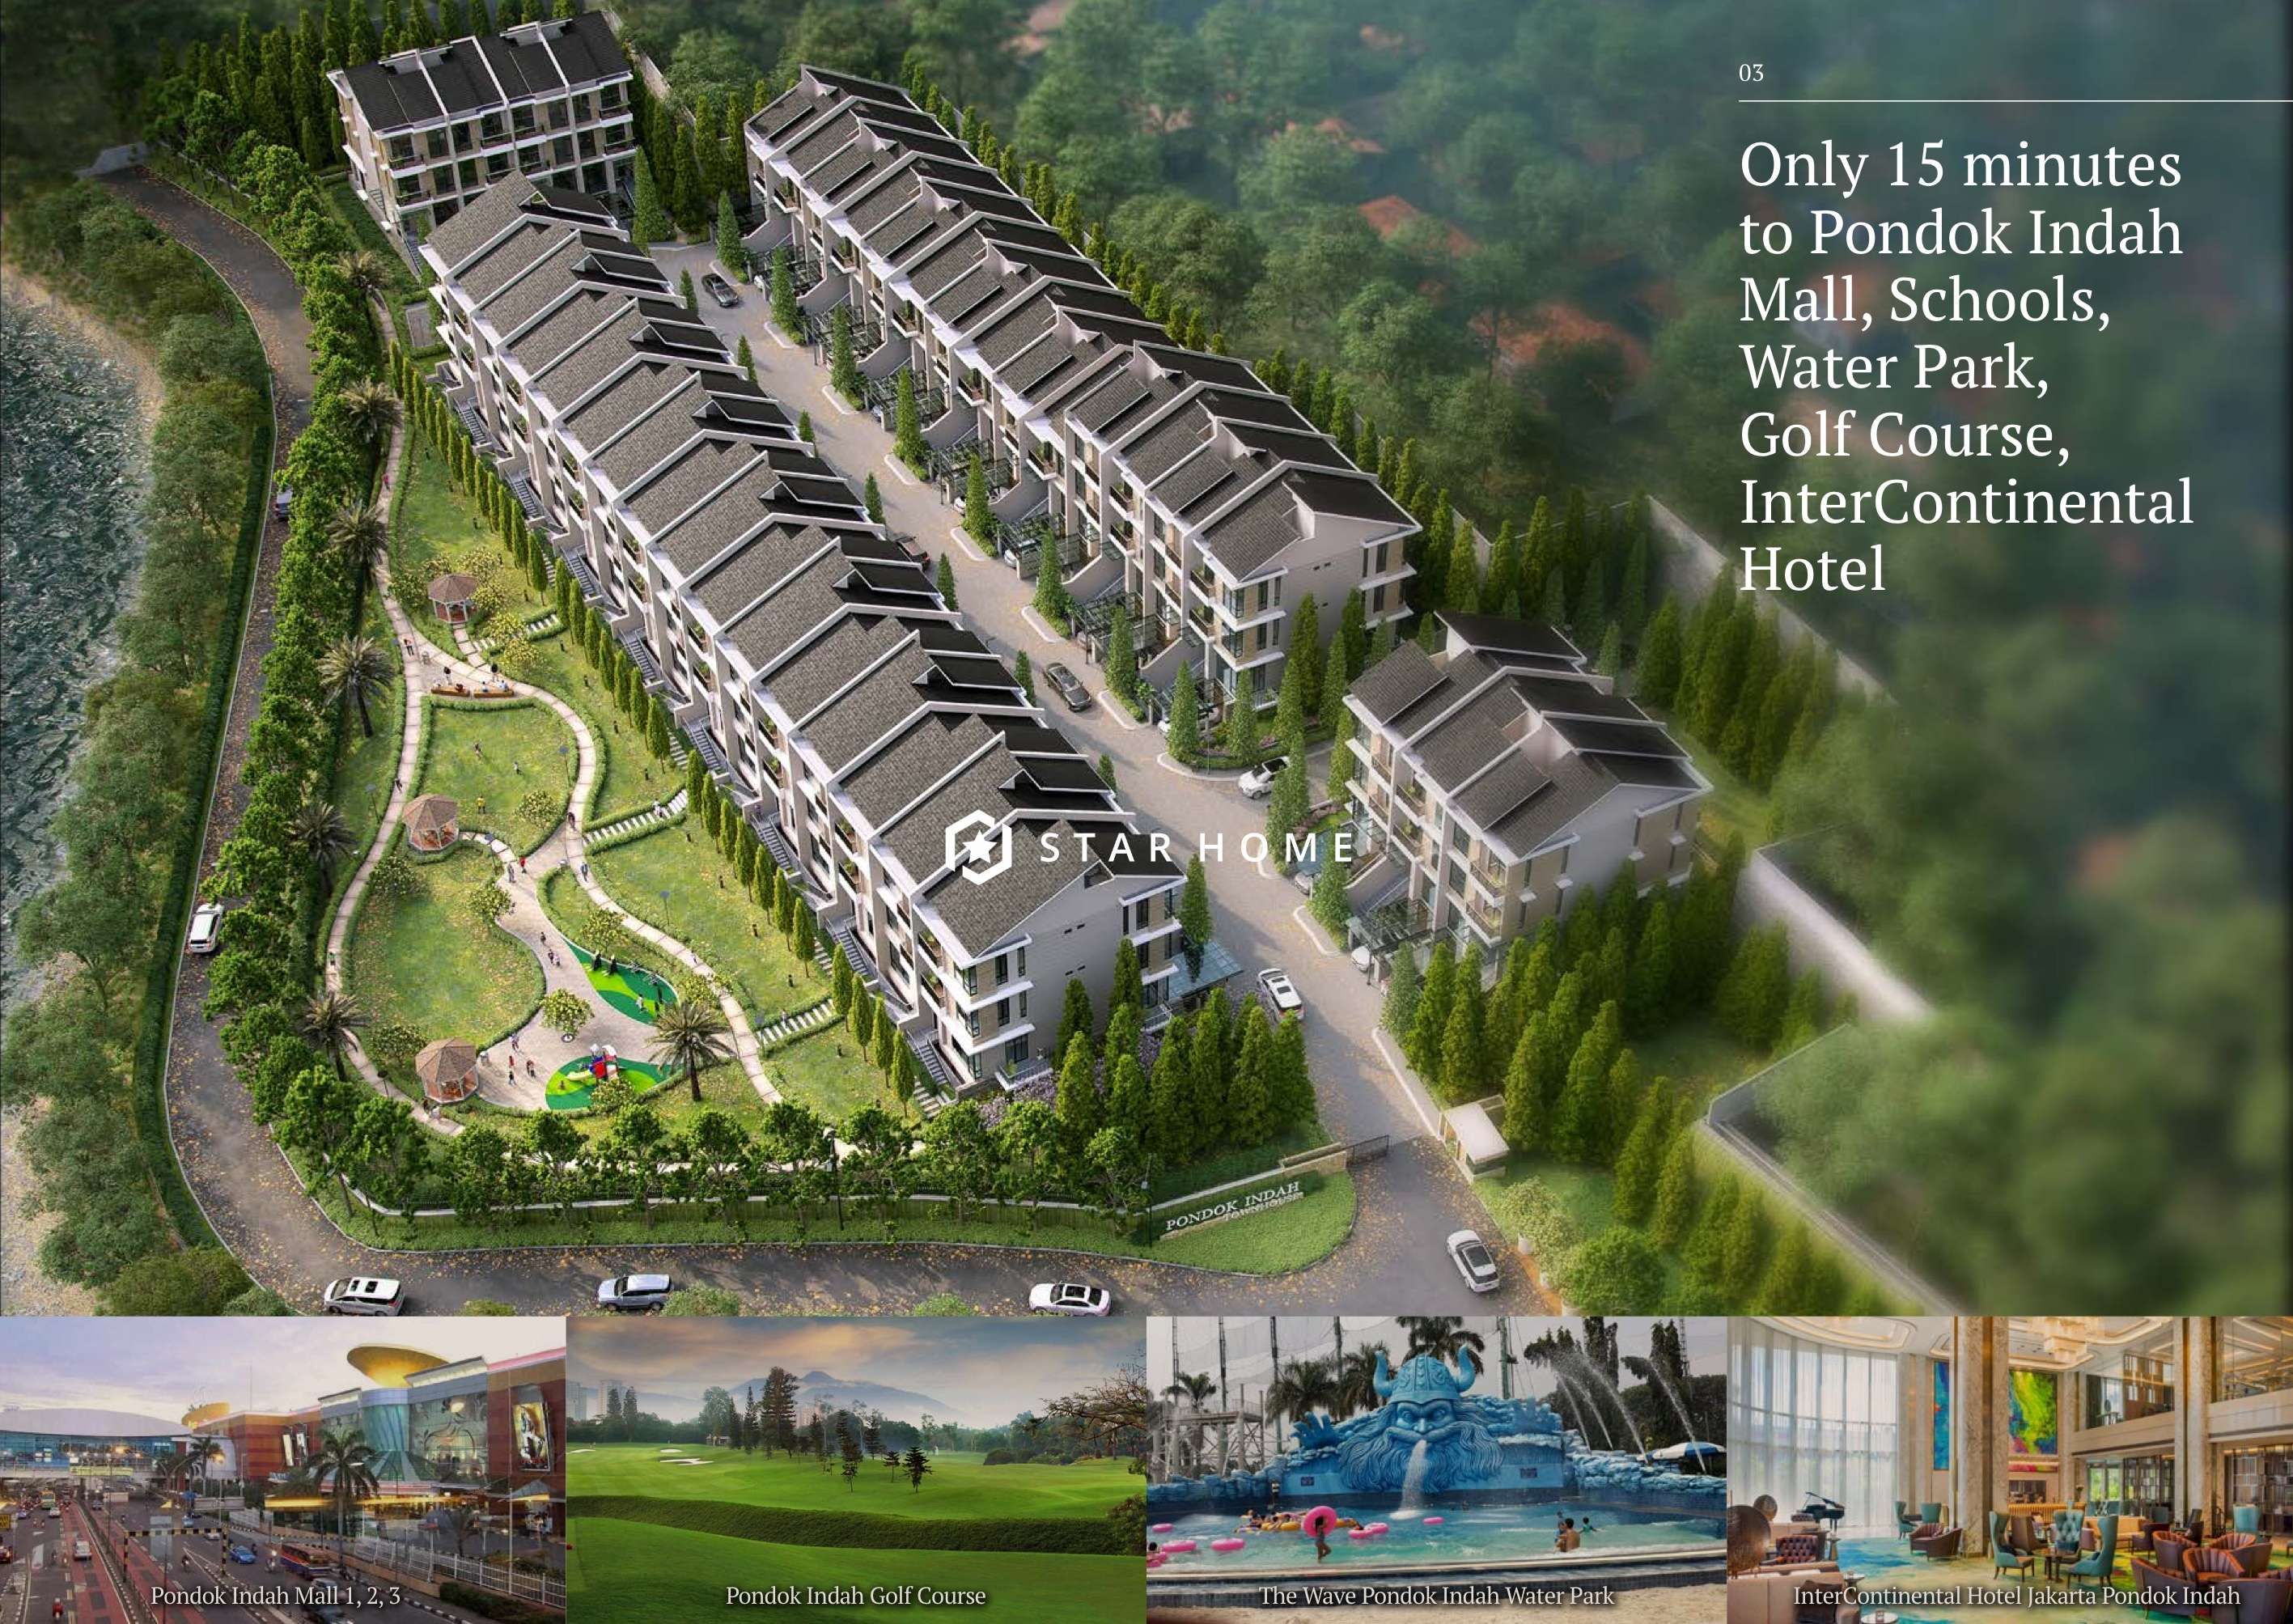 pondok-indah-townhouse-bluebell-midle-1-3